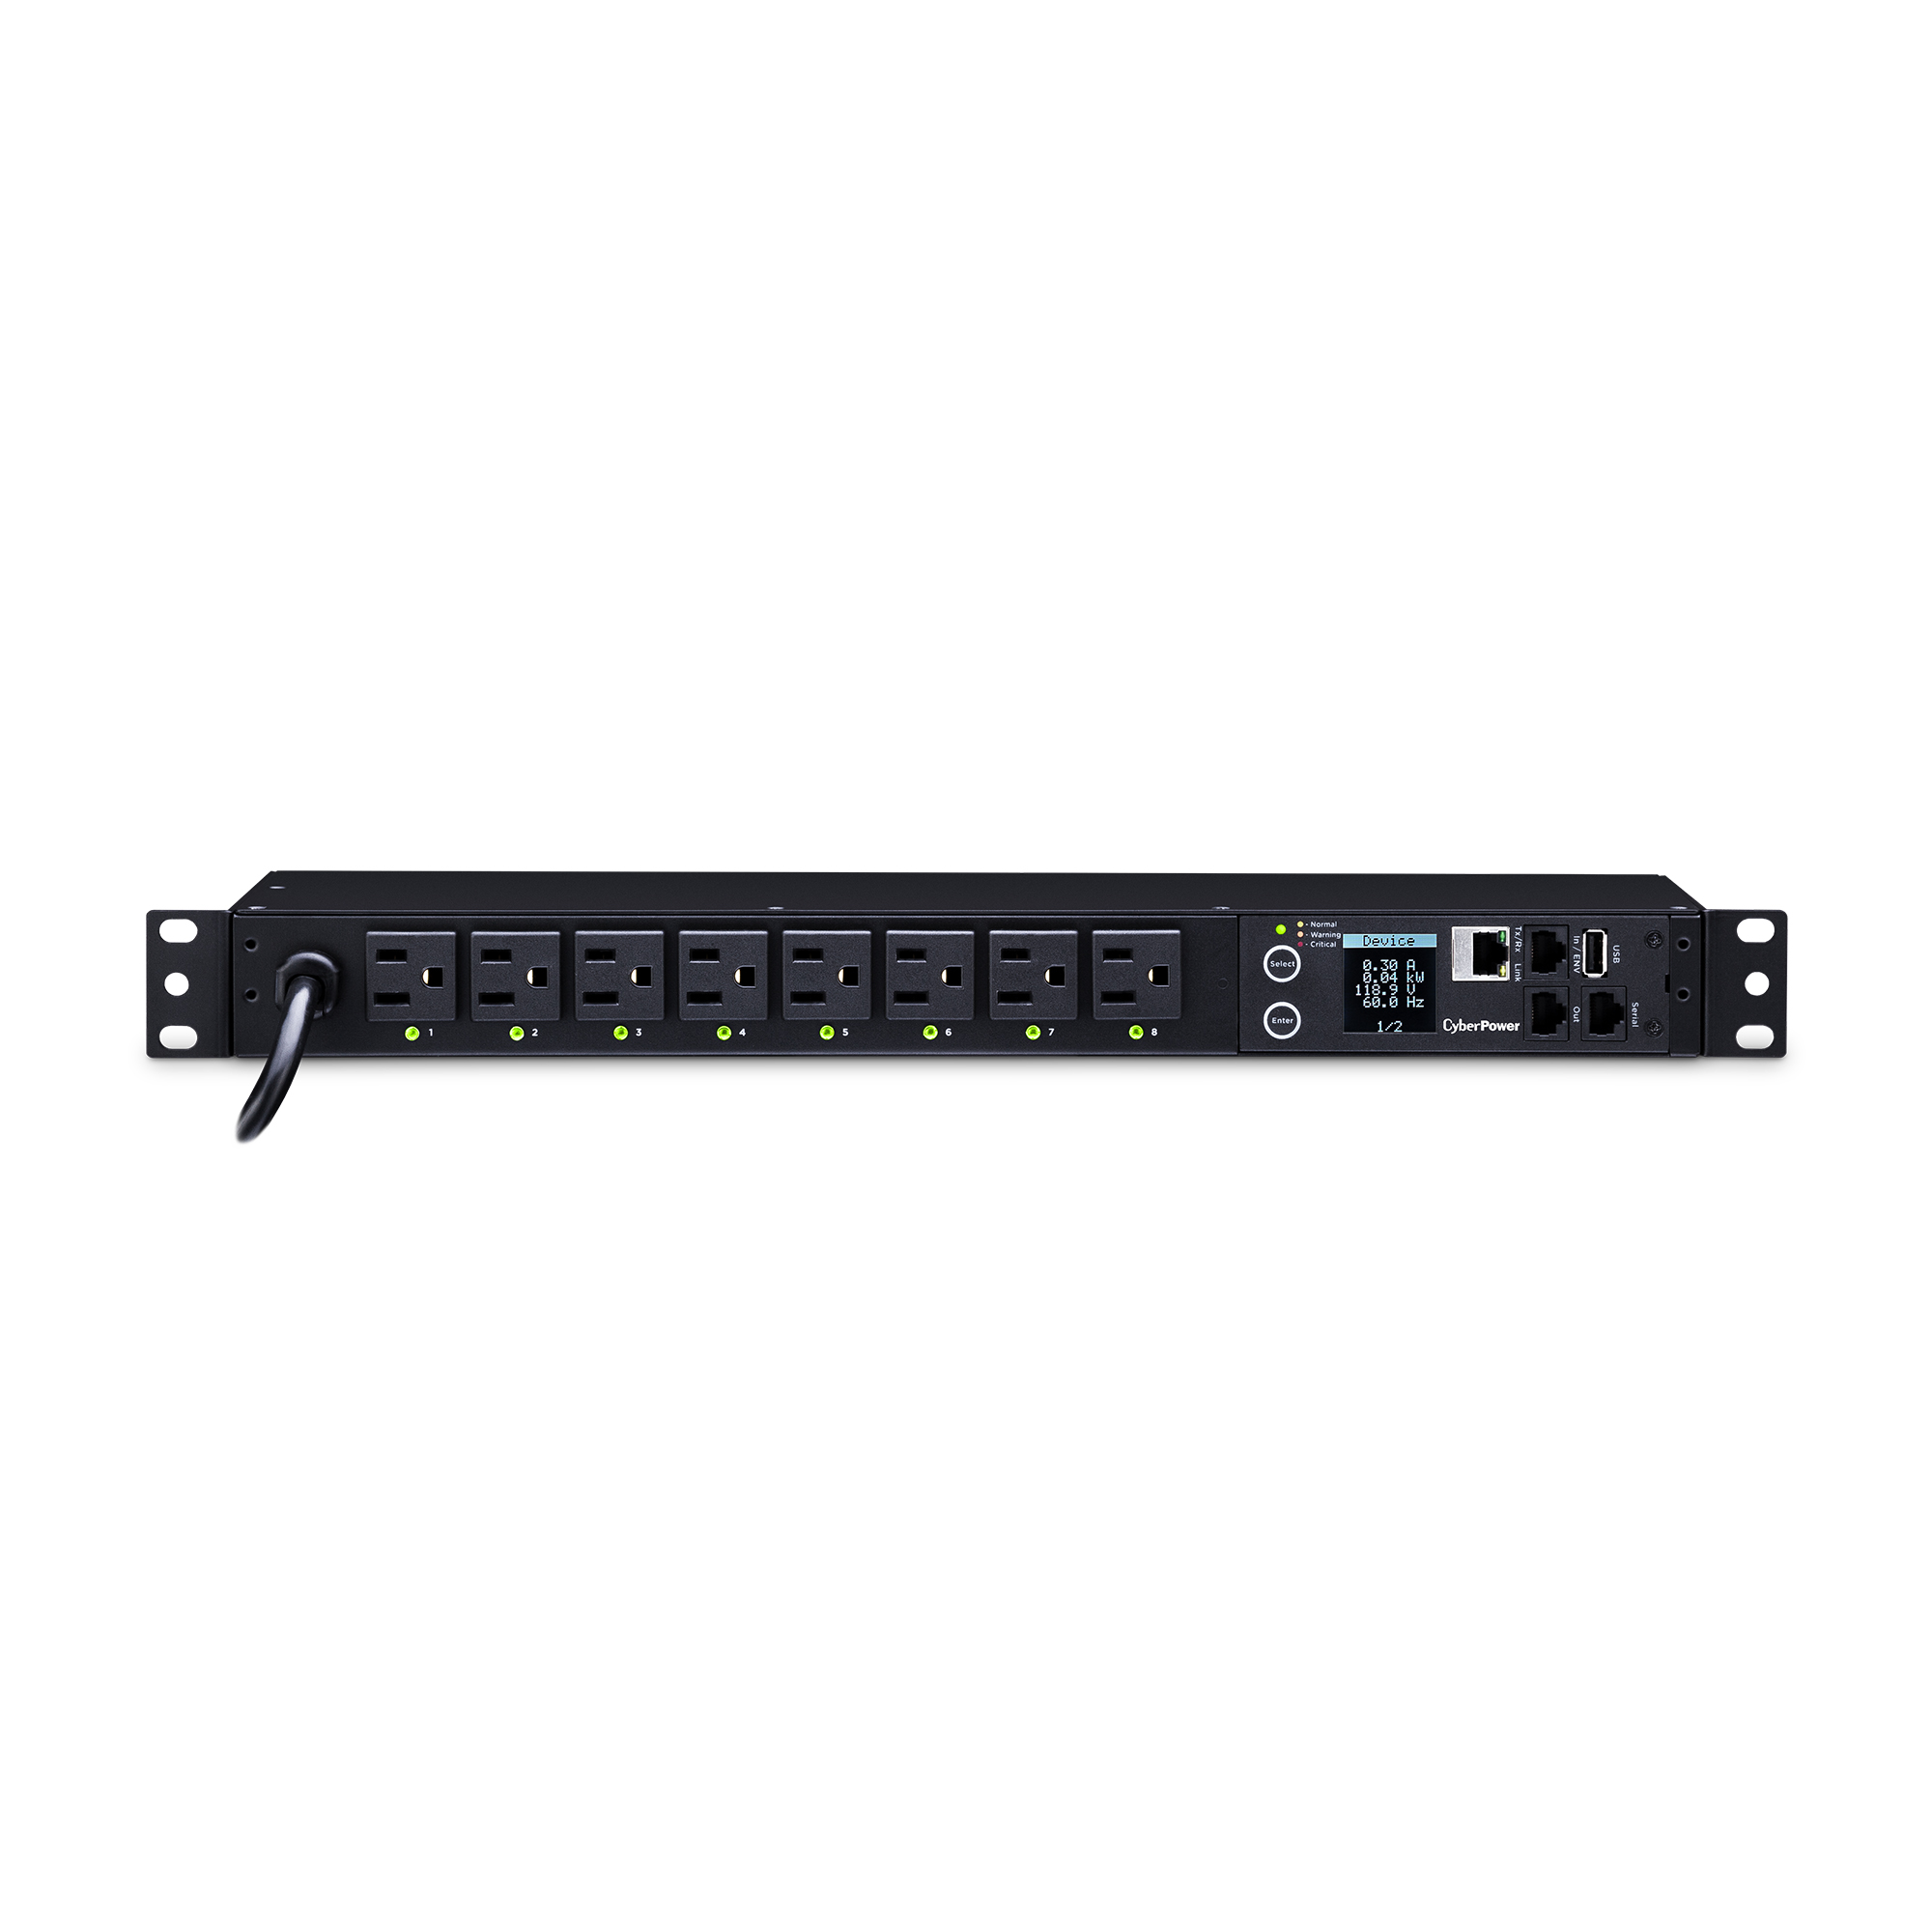 Pdu81001 Switched Metered By Outlet Pdu Series Product